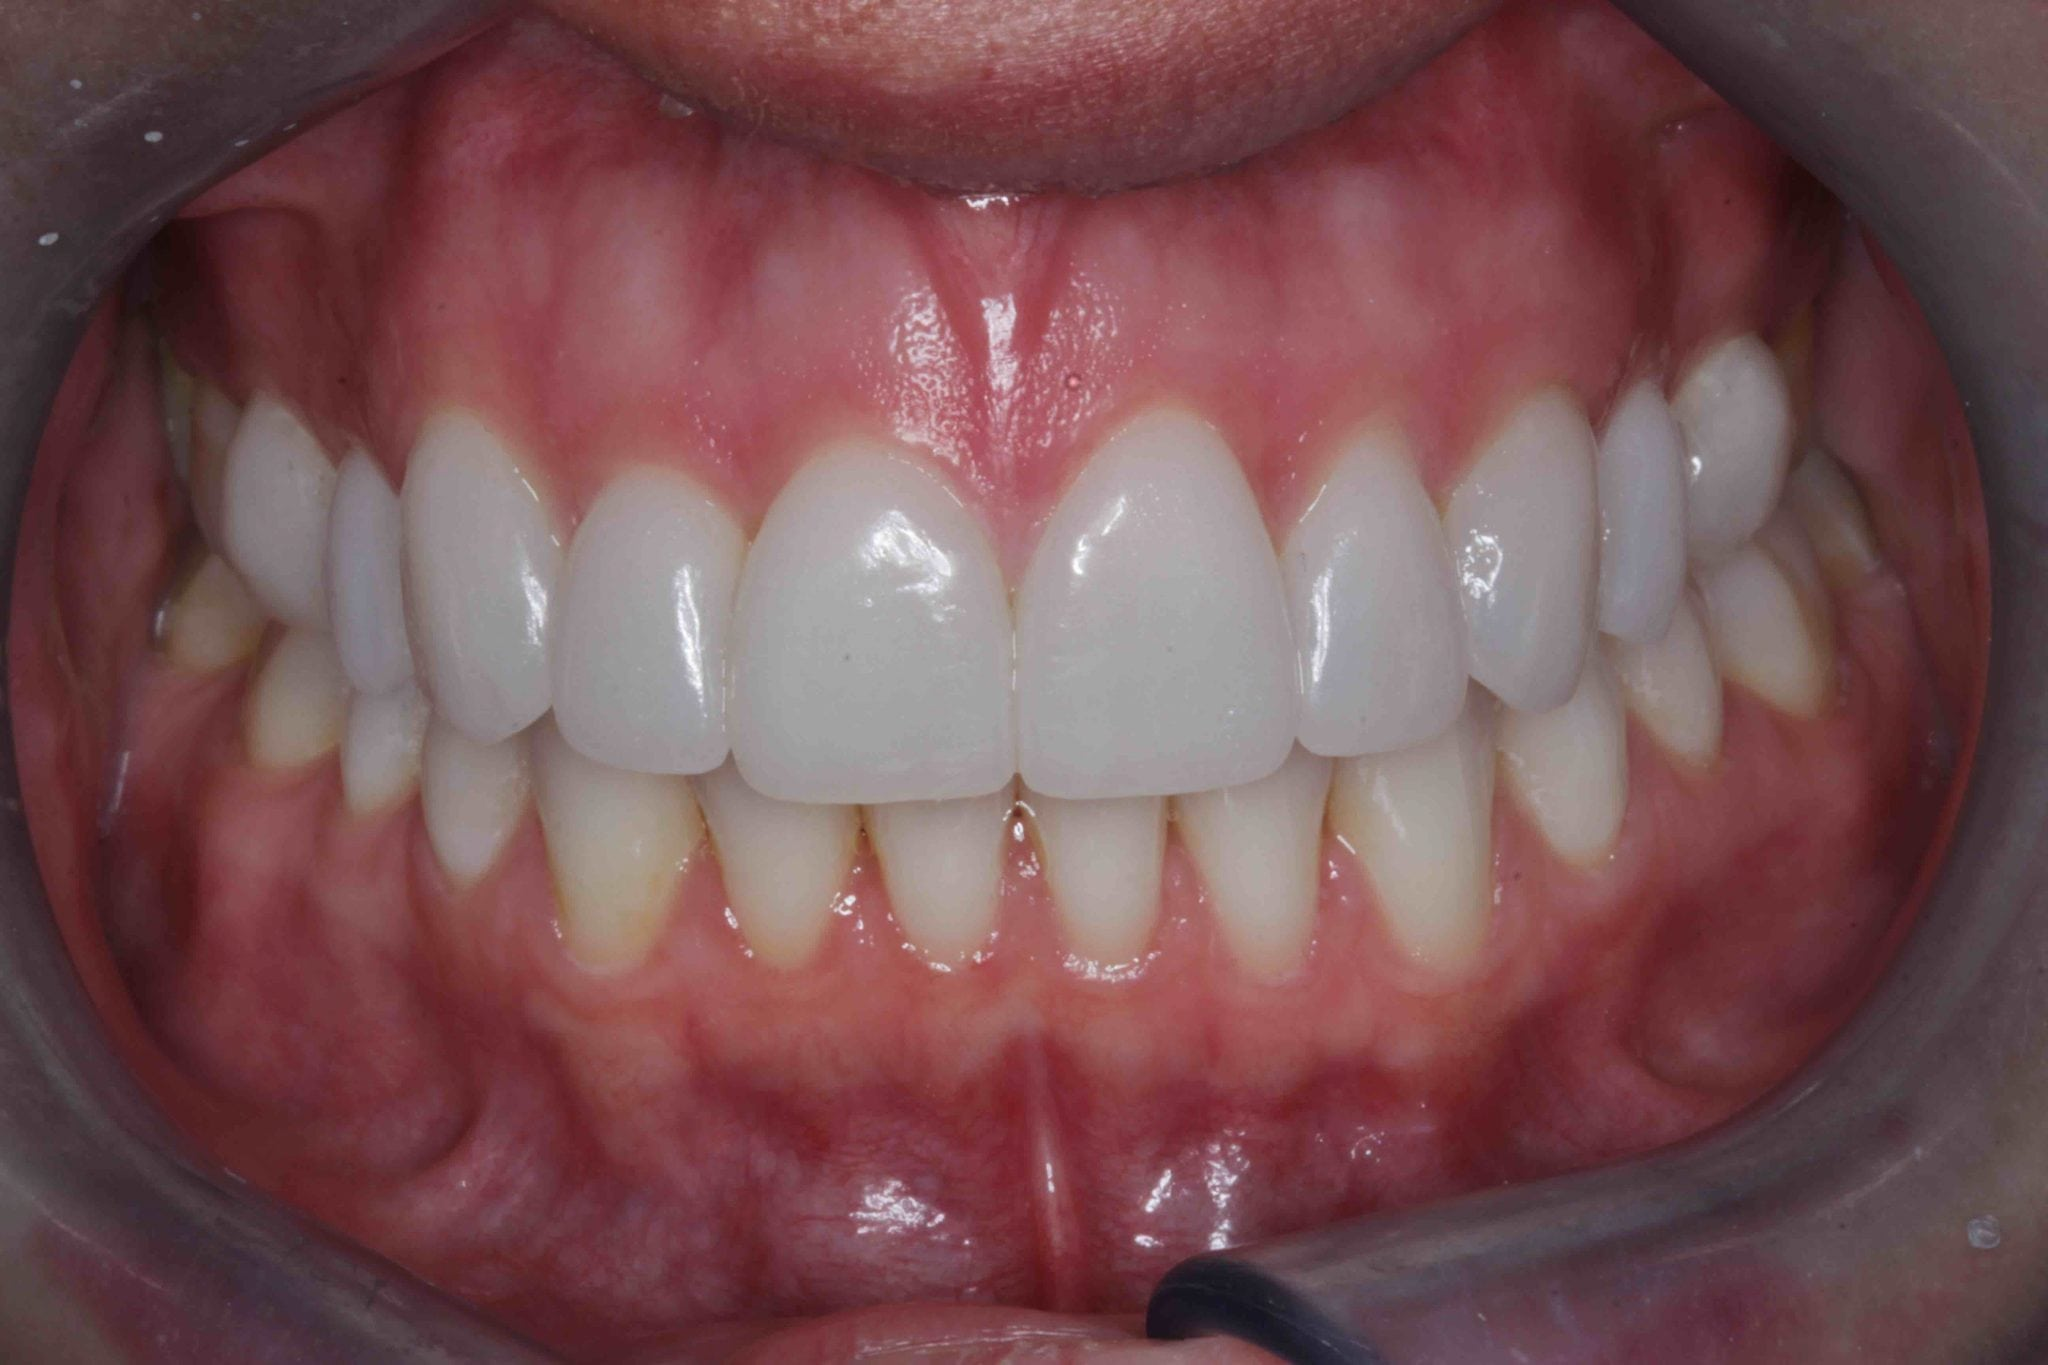 Porcelain Veneers Before and after Smile makeover photos